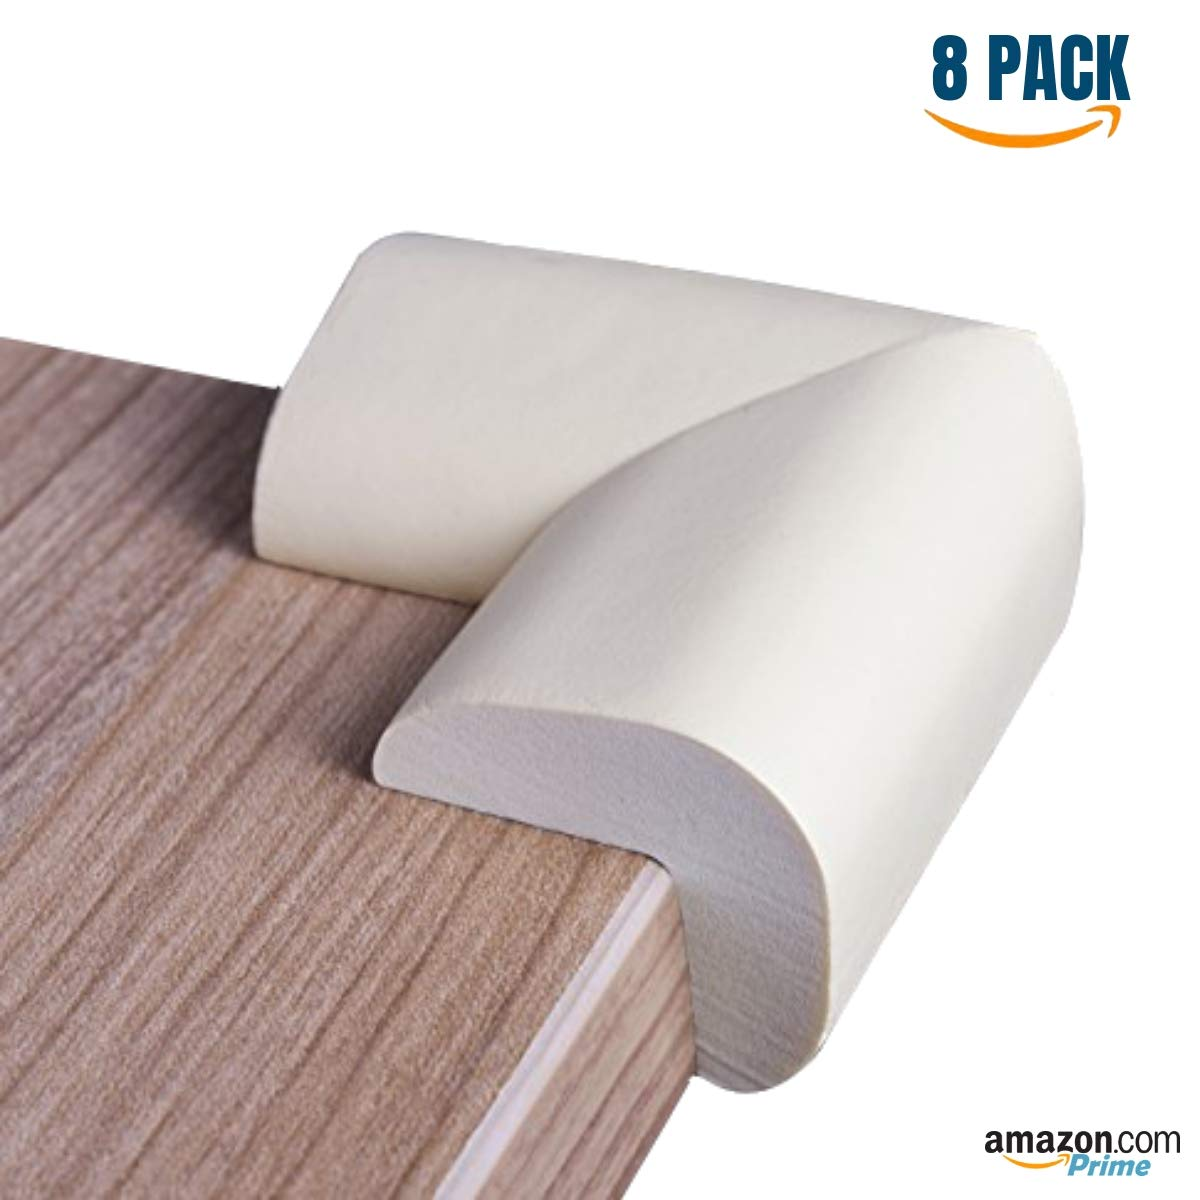 Safety Furniture Bumpers Foam Corner Protectors Pre-Applied Adhesive Sharp Corner Cushions Long Lasting Foam Caring Corner Guards by The Hamptons Baby White